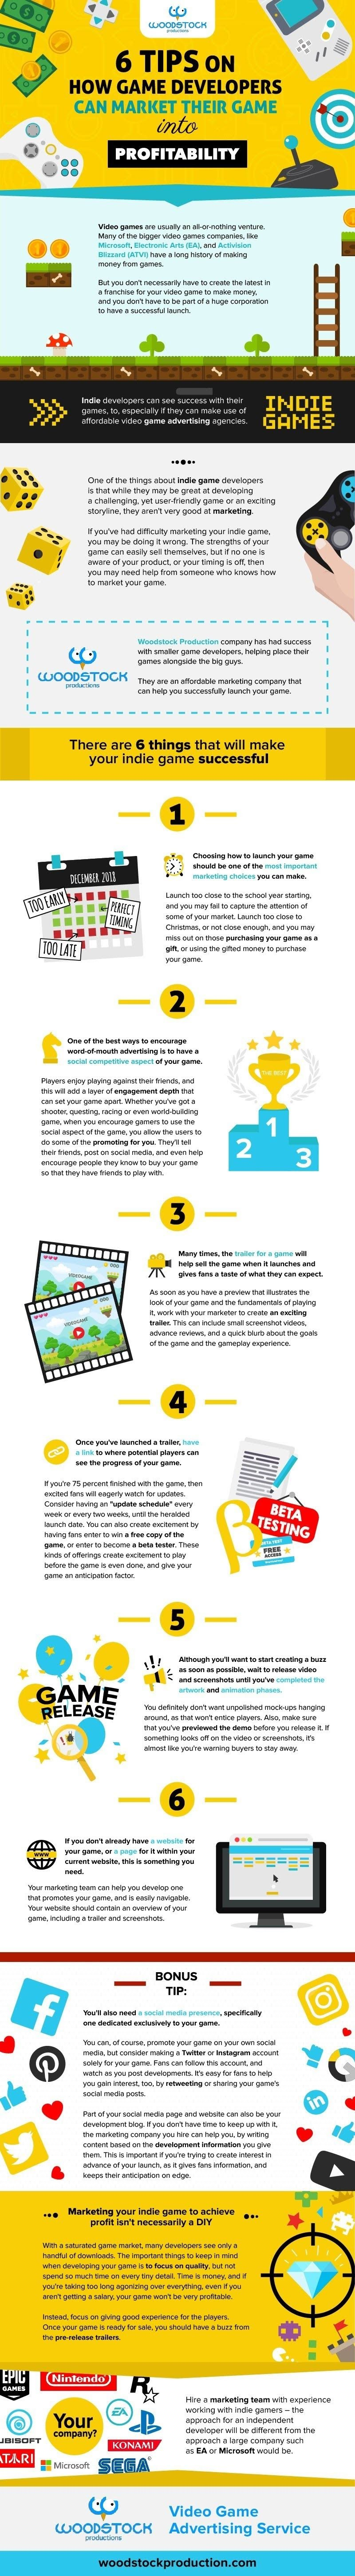 6 Tips On How Game Developers Can Market Their Game Into Profitability #infographic